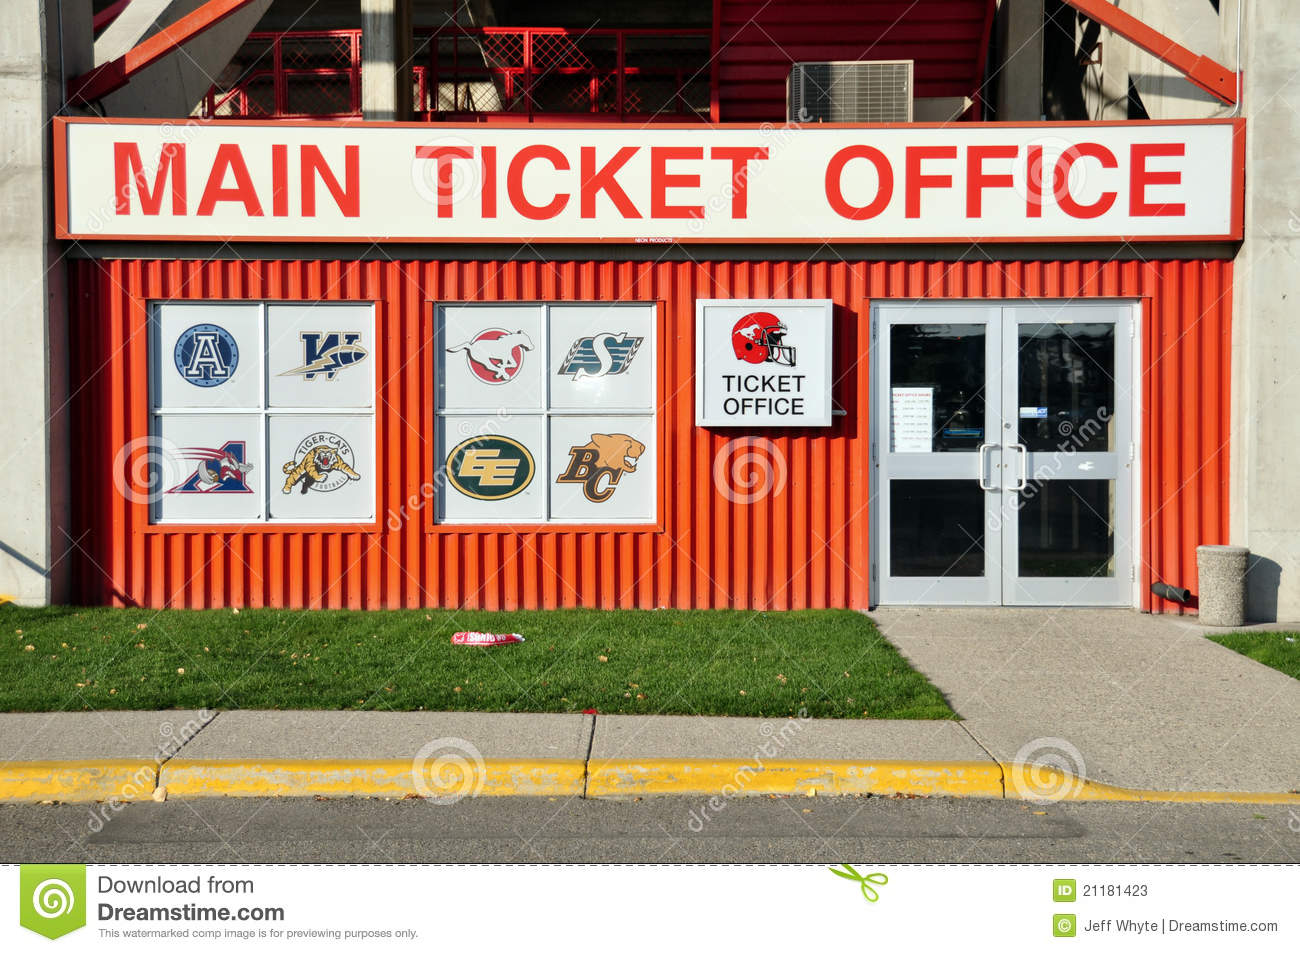 Main Ticket Office, McMahon Stadium